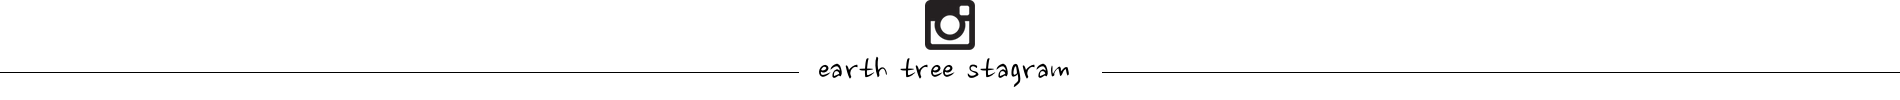 earth tree instagram